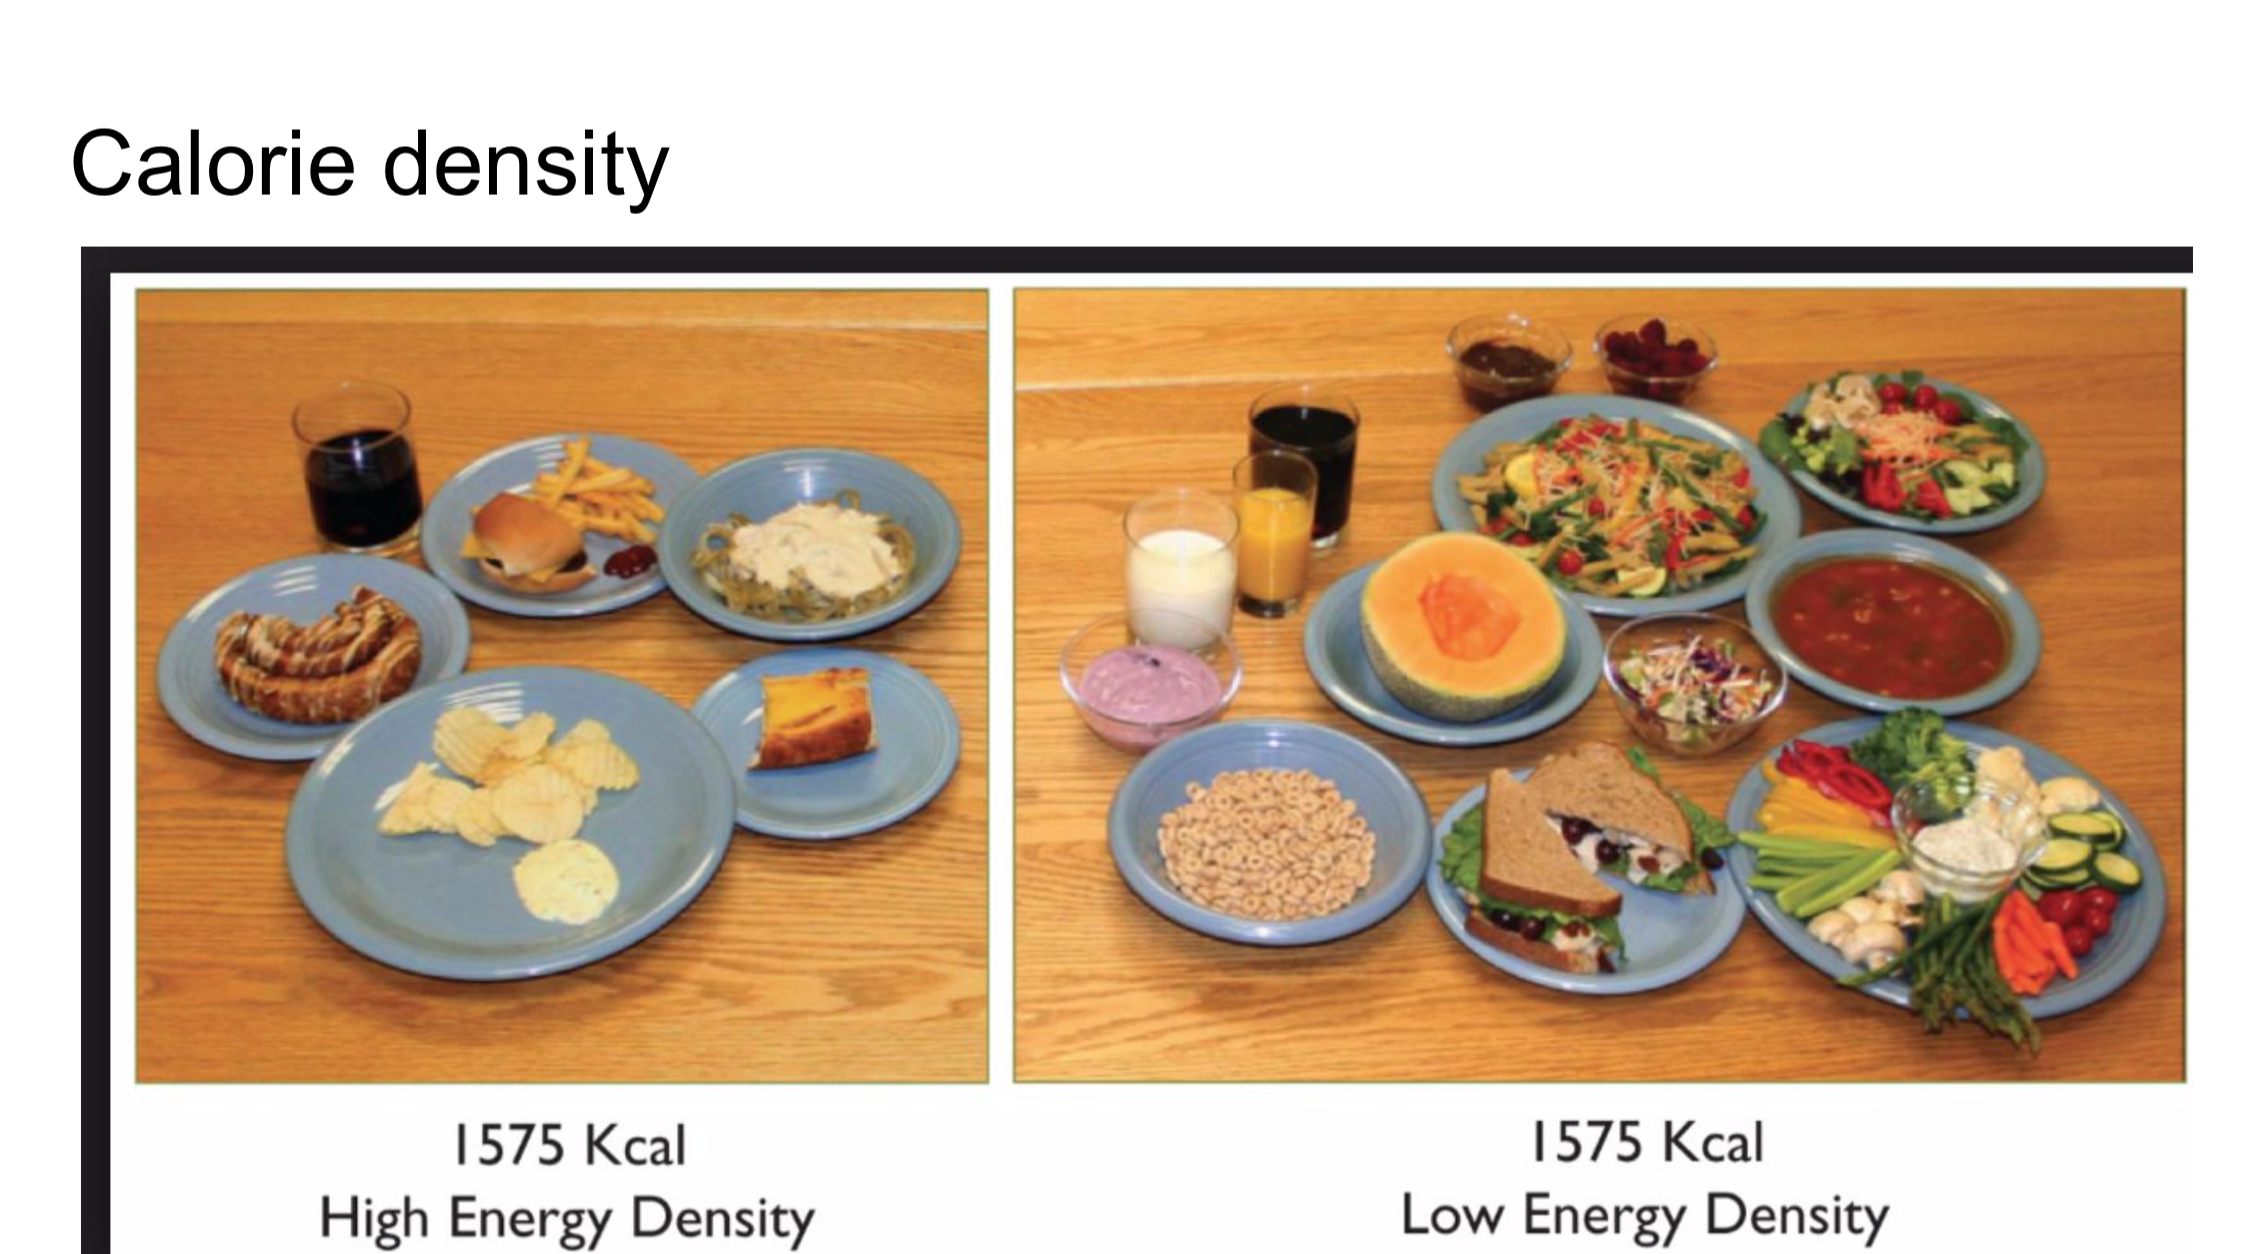 As you can see here, the caloric density choices can drastically change to amount of food that can be eaten in one day for the same amount of calories.